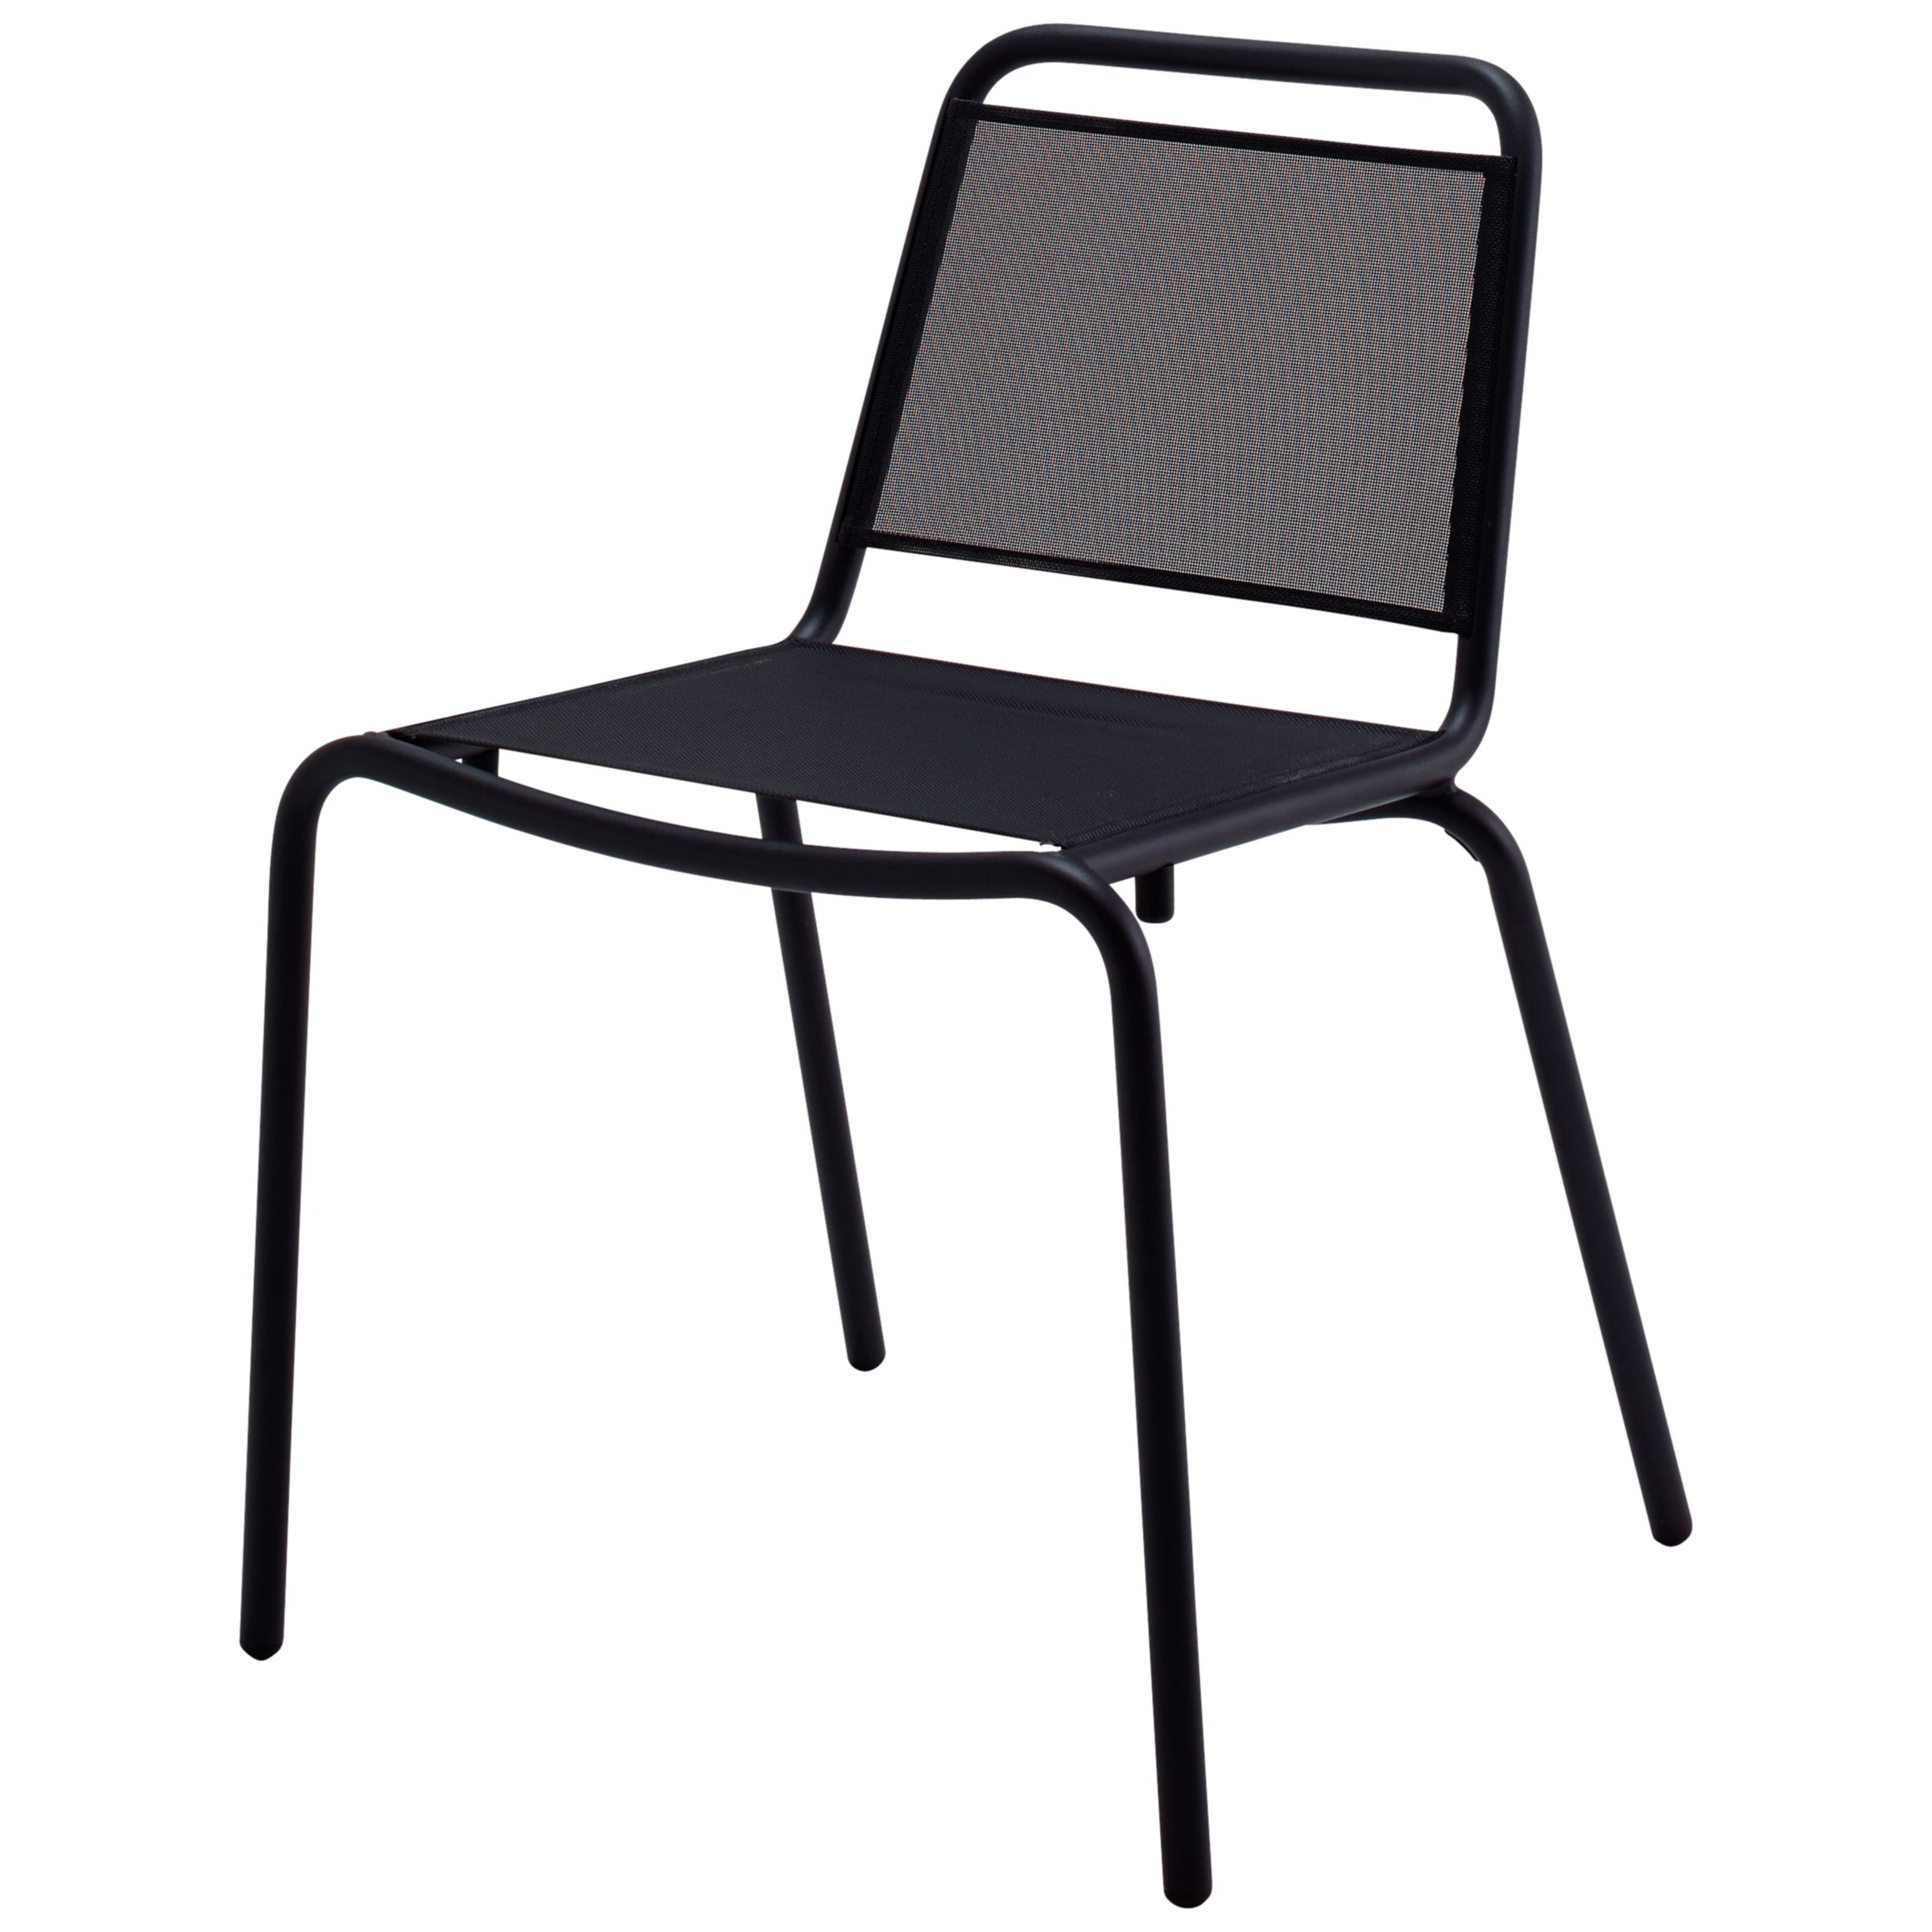 Gloster Nomad Sling Woven Stacking Chair, Black